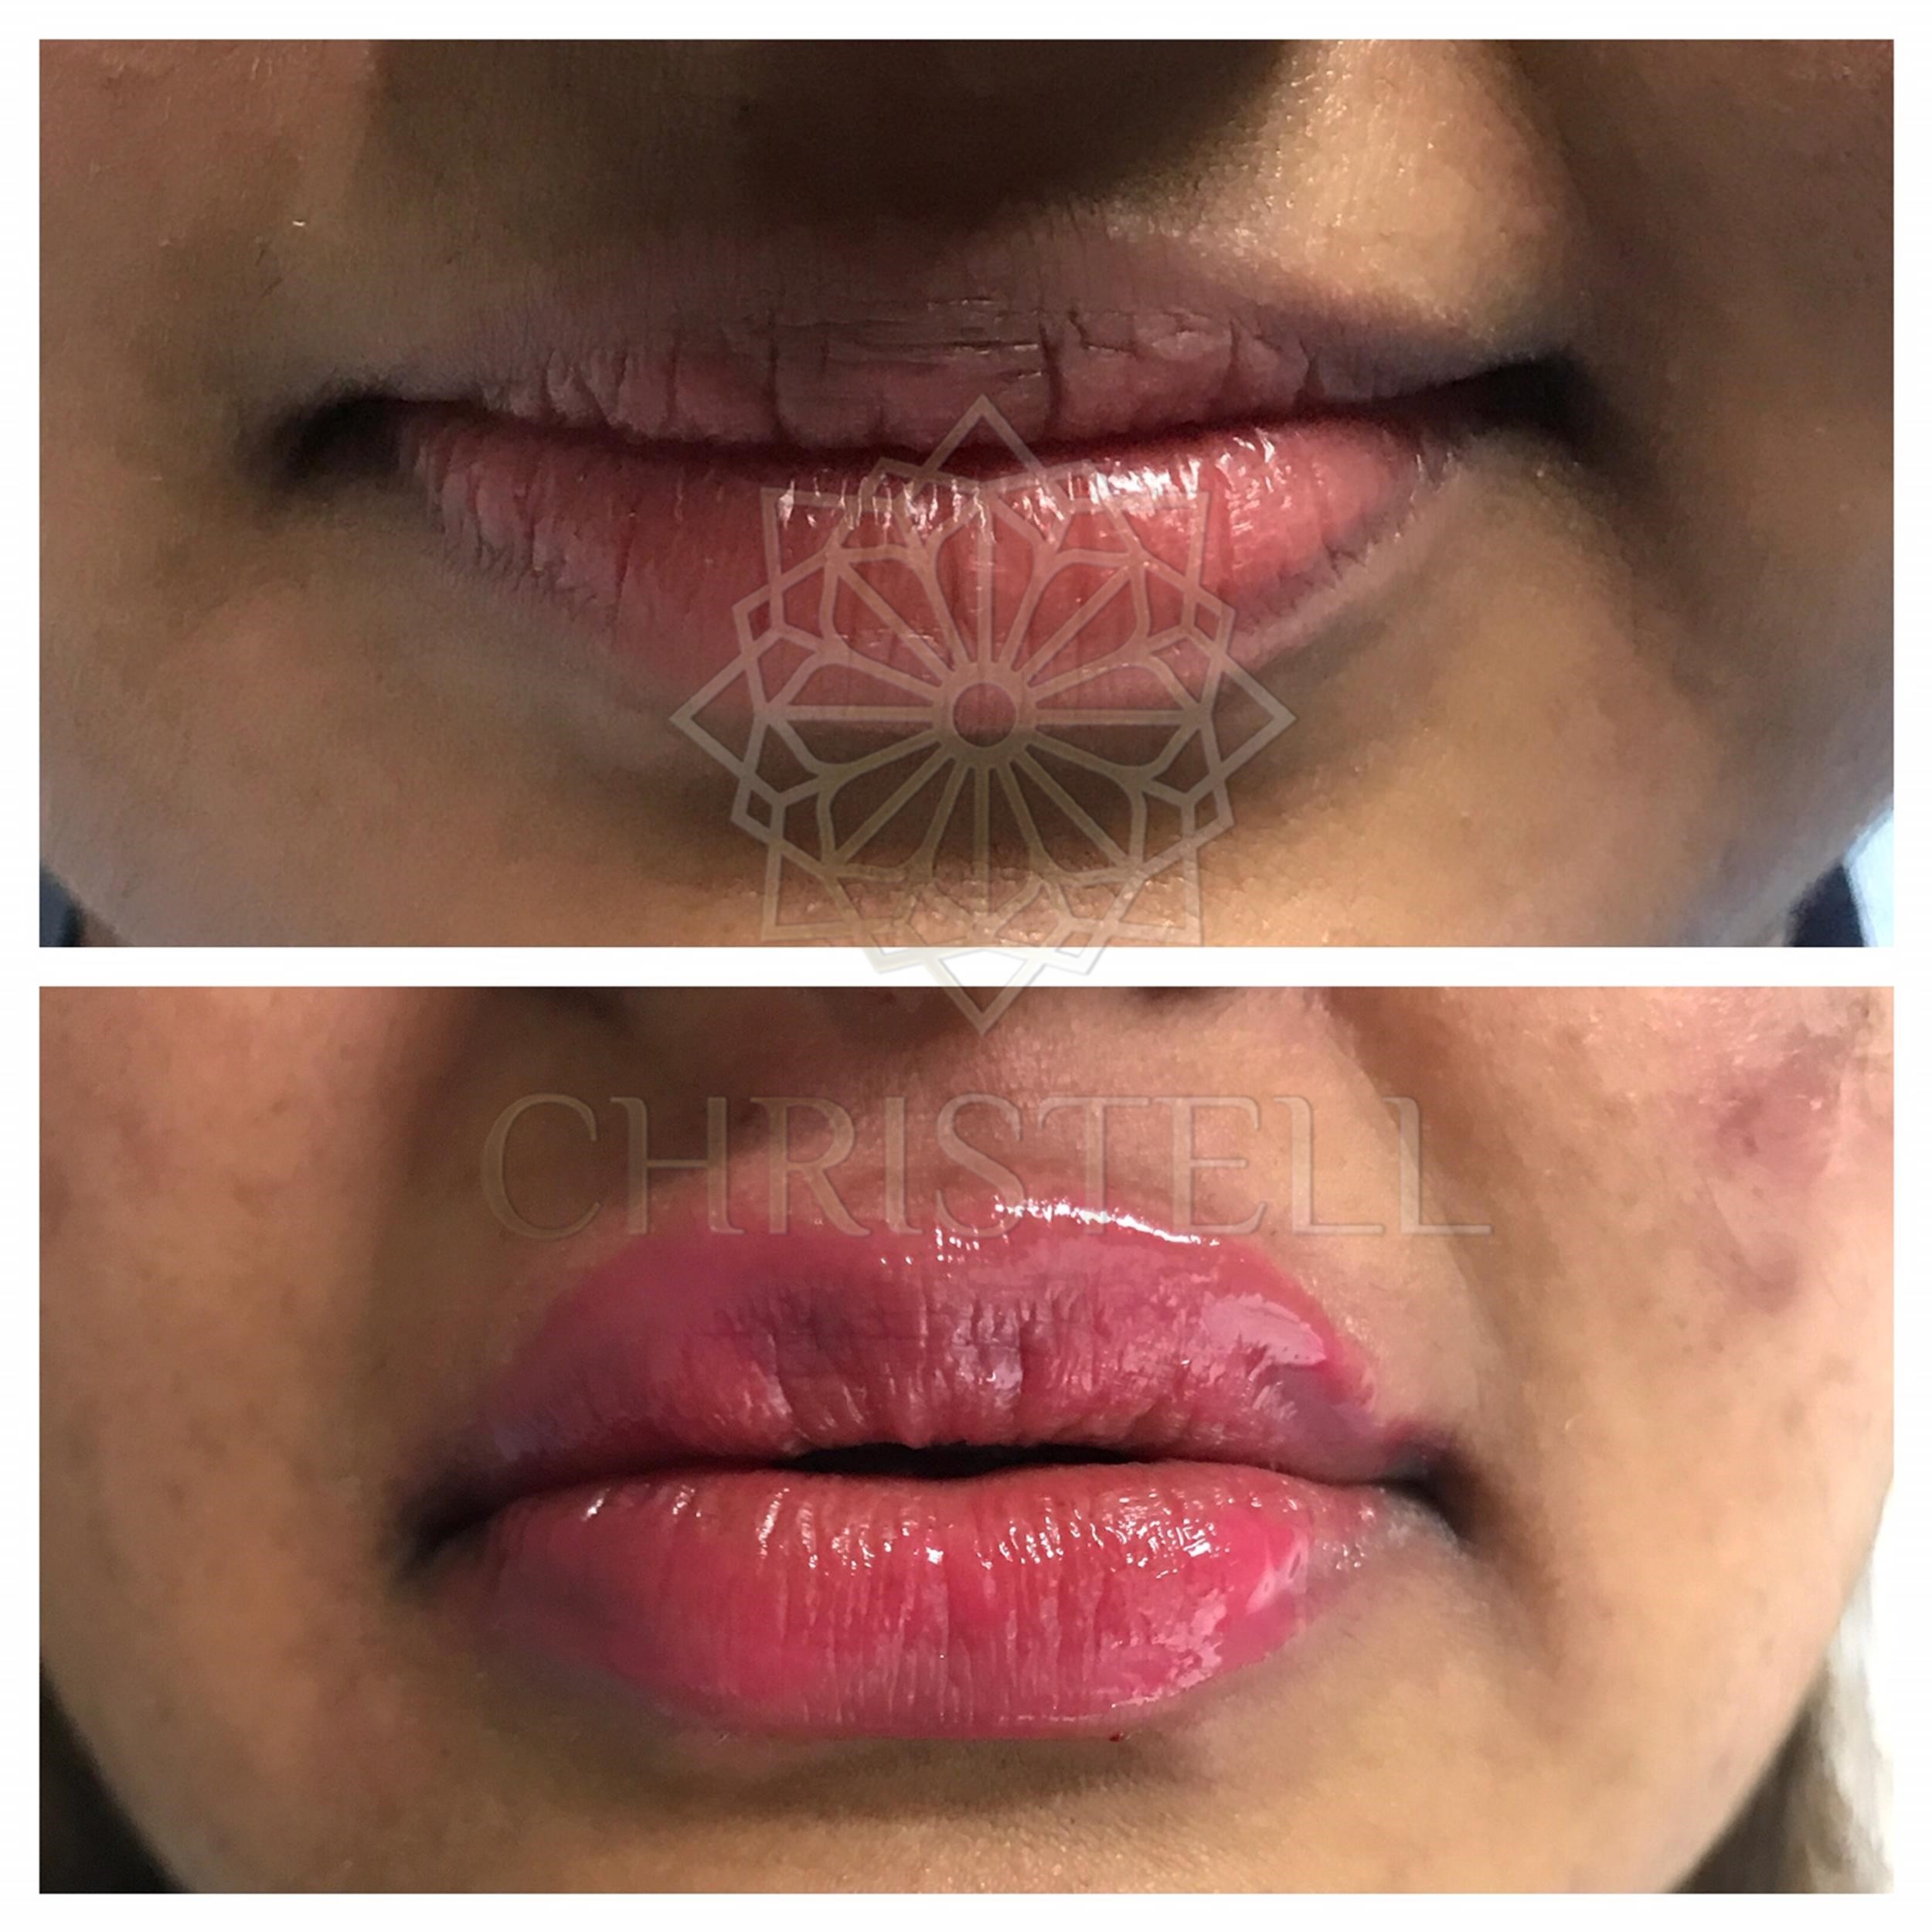 IMG_5768_wm Dermal Fillers (Cheeks,Eyes,Lips, Face)